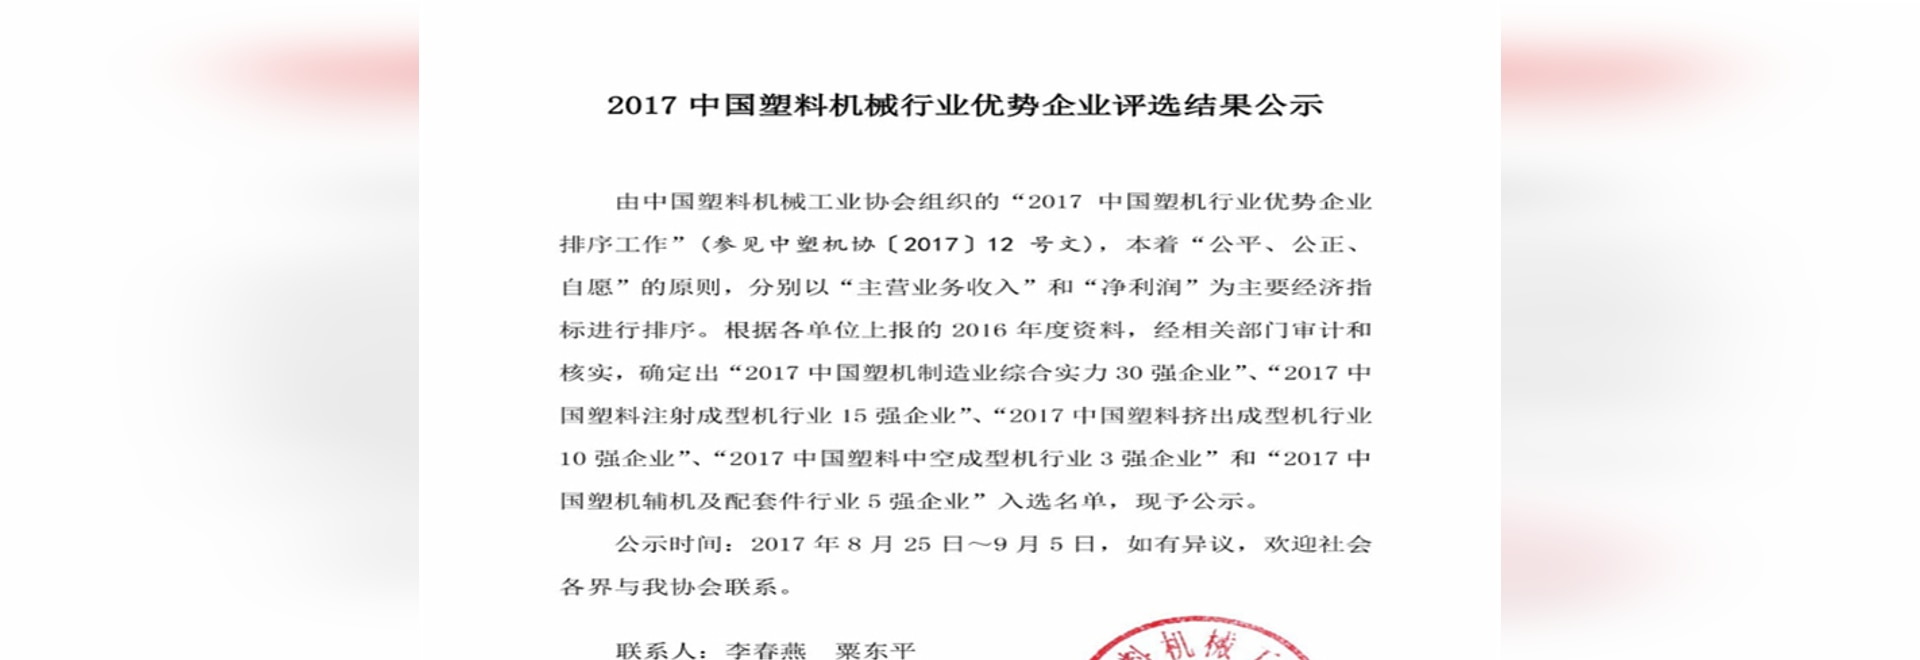 We are top 4 in China plastic machinery industry 2017